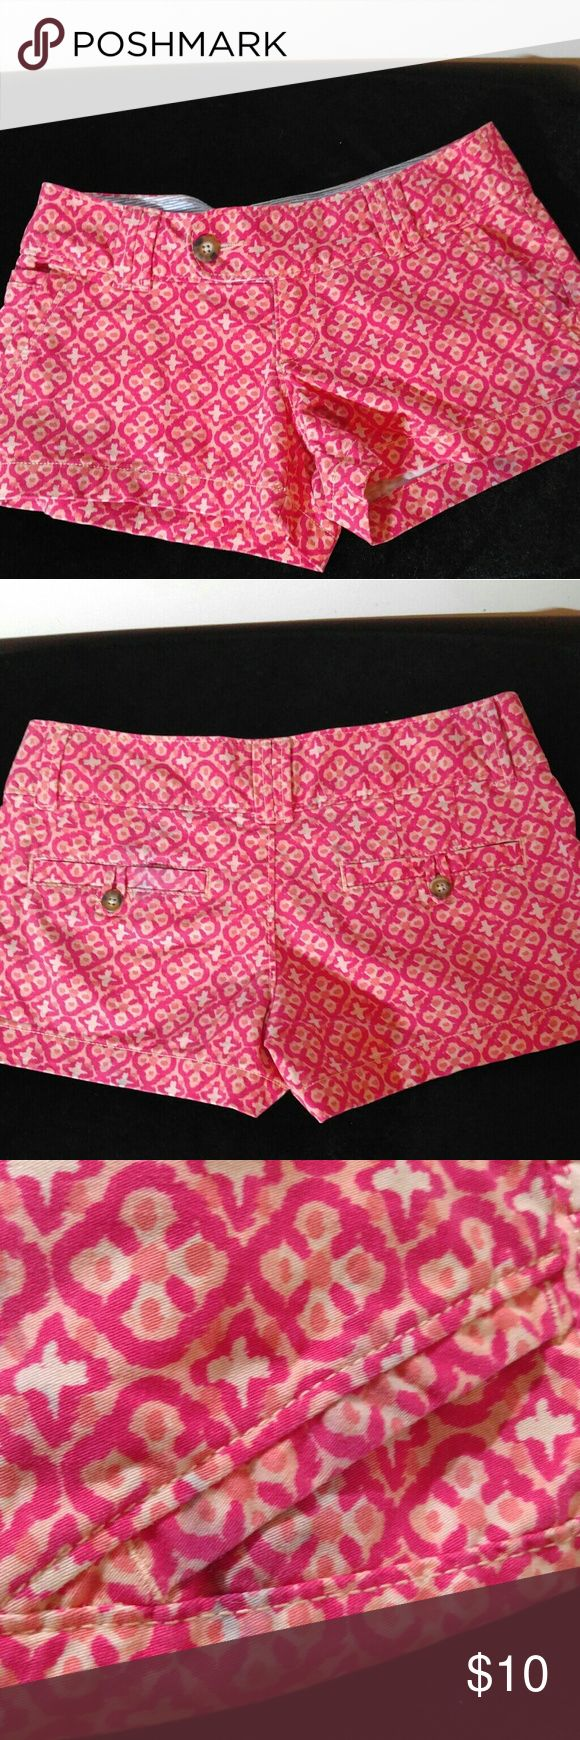 Red Camel Shorts Sz 0 Red Camel Shorts-These are really cute shorts, however I want to note that something bled on them in the wash, it's hardly noticeable. I did take photos but it really is so light you can hardly tell. Please see photos before you consider purchasing. Red Camel Shorts